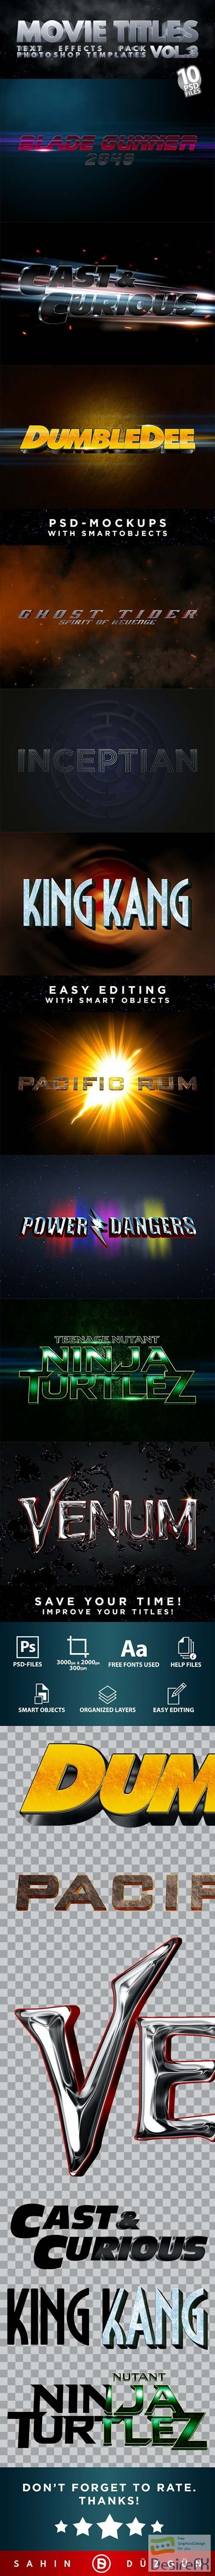 GraphicRiver - MOVIE TITLES - Vol.3 | Text-Effects/Mockups | Template-Pack 30289874